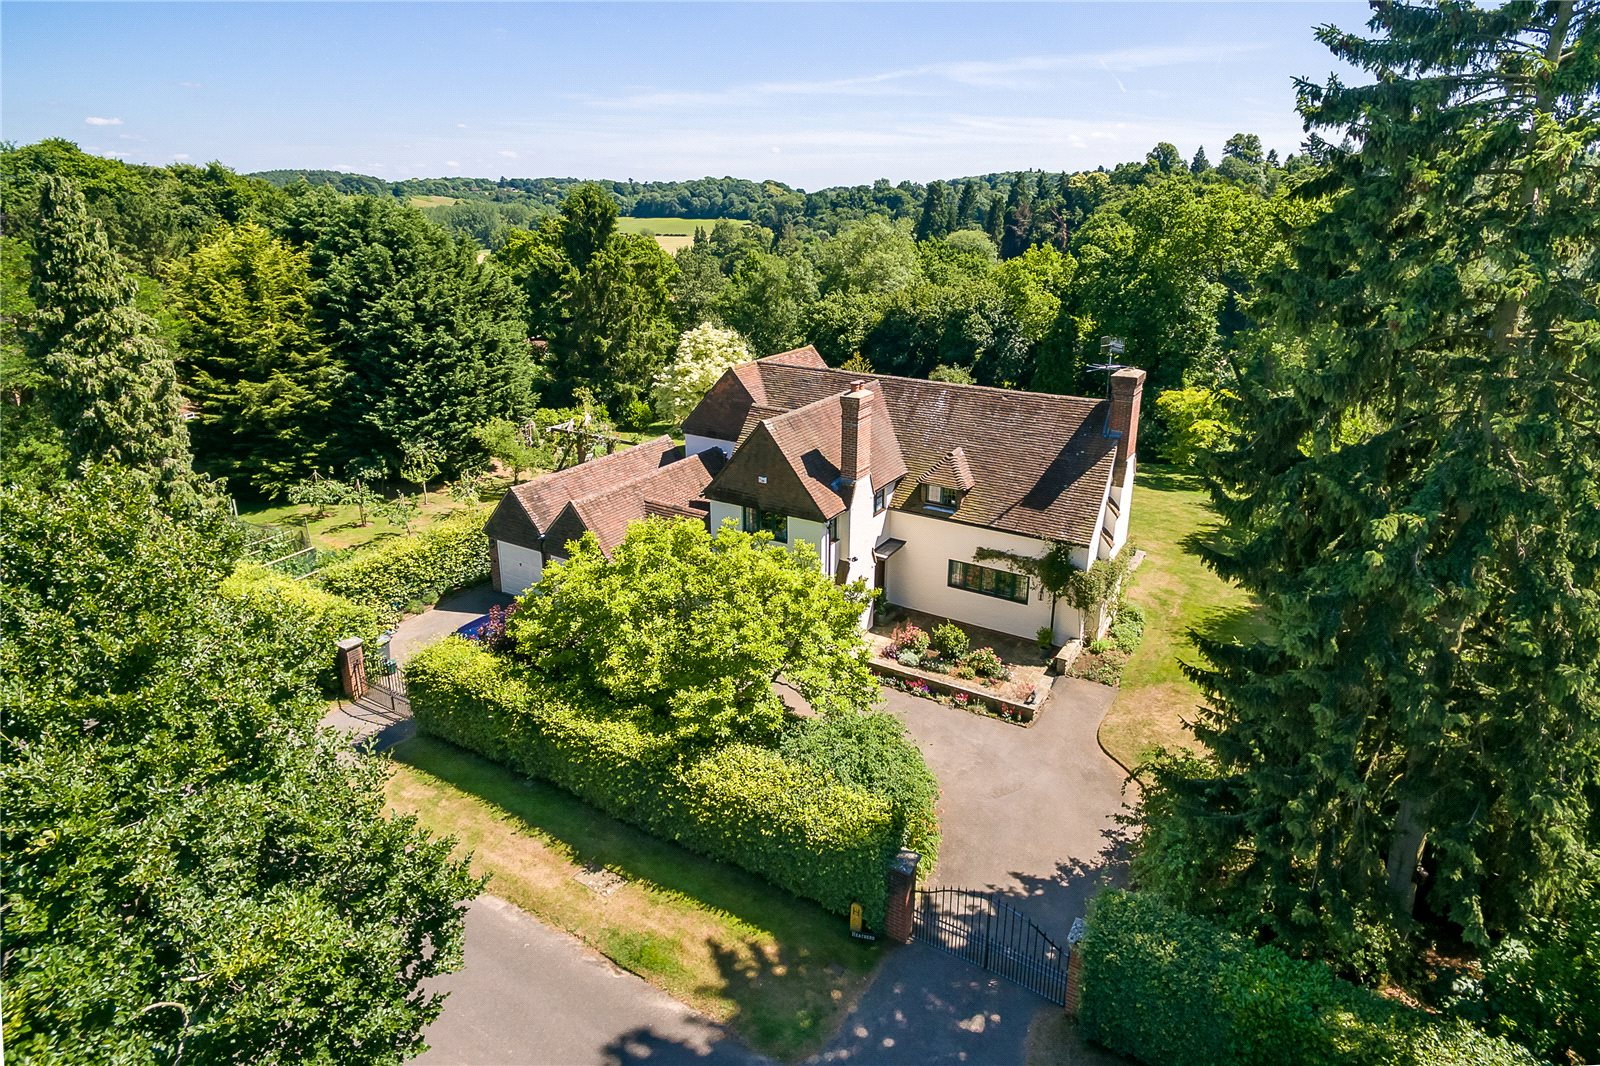 Single Family Home for Sale at Snowdenham Links Road, Bramley, Guildford, Surrey, GU5 Guildford, England